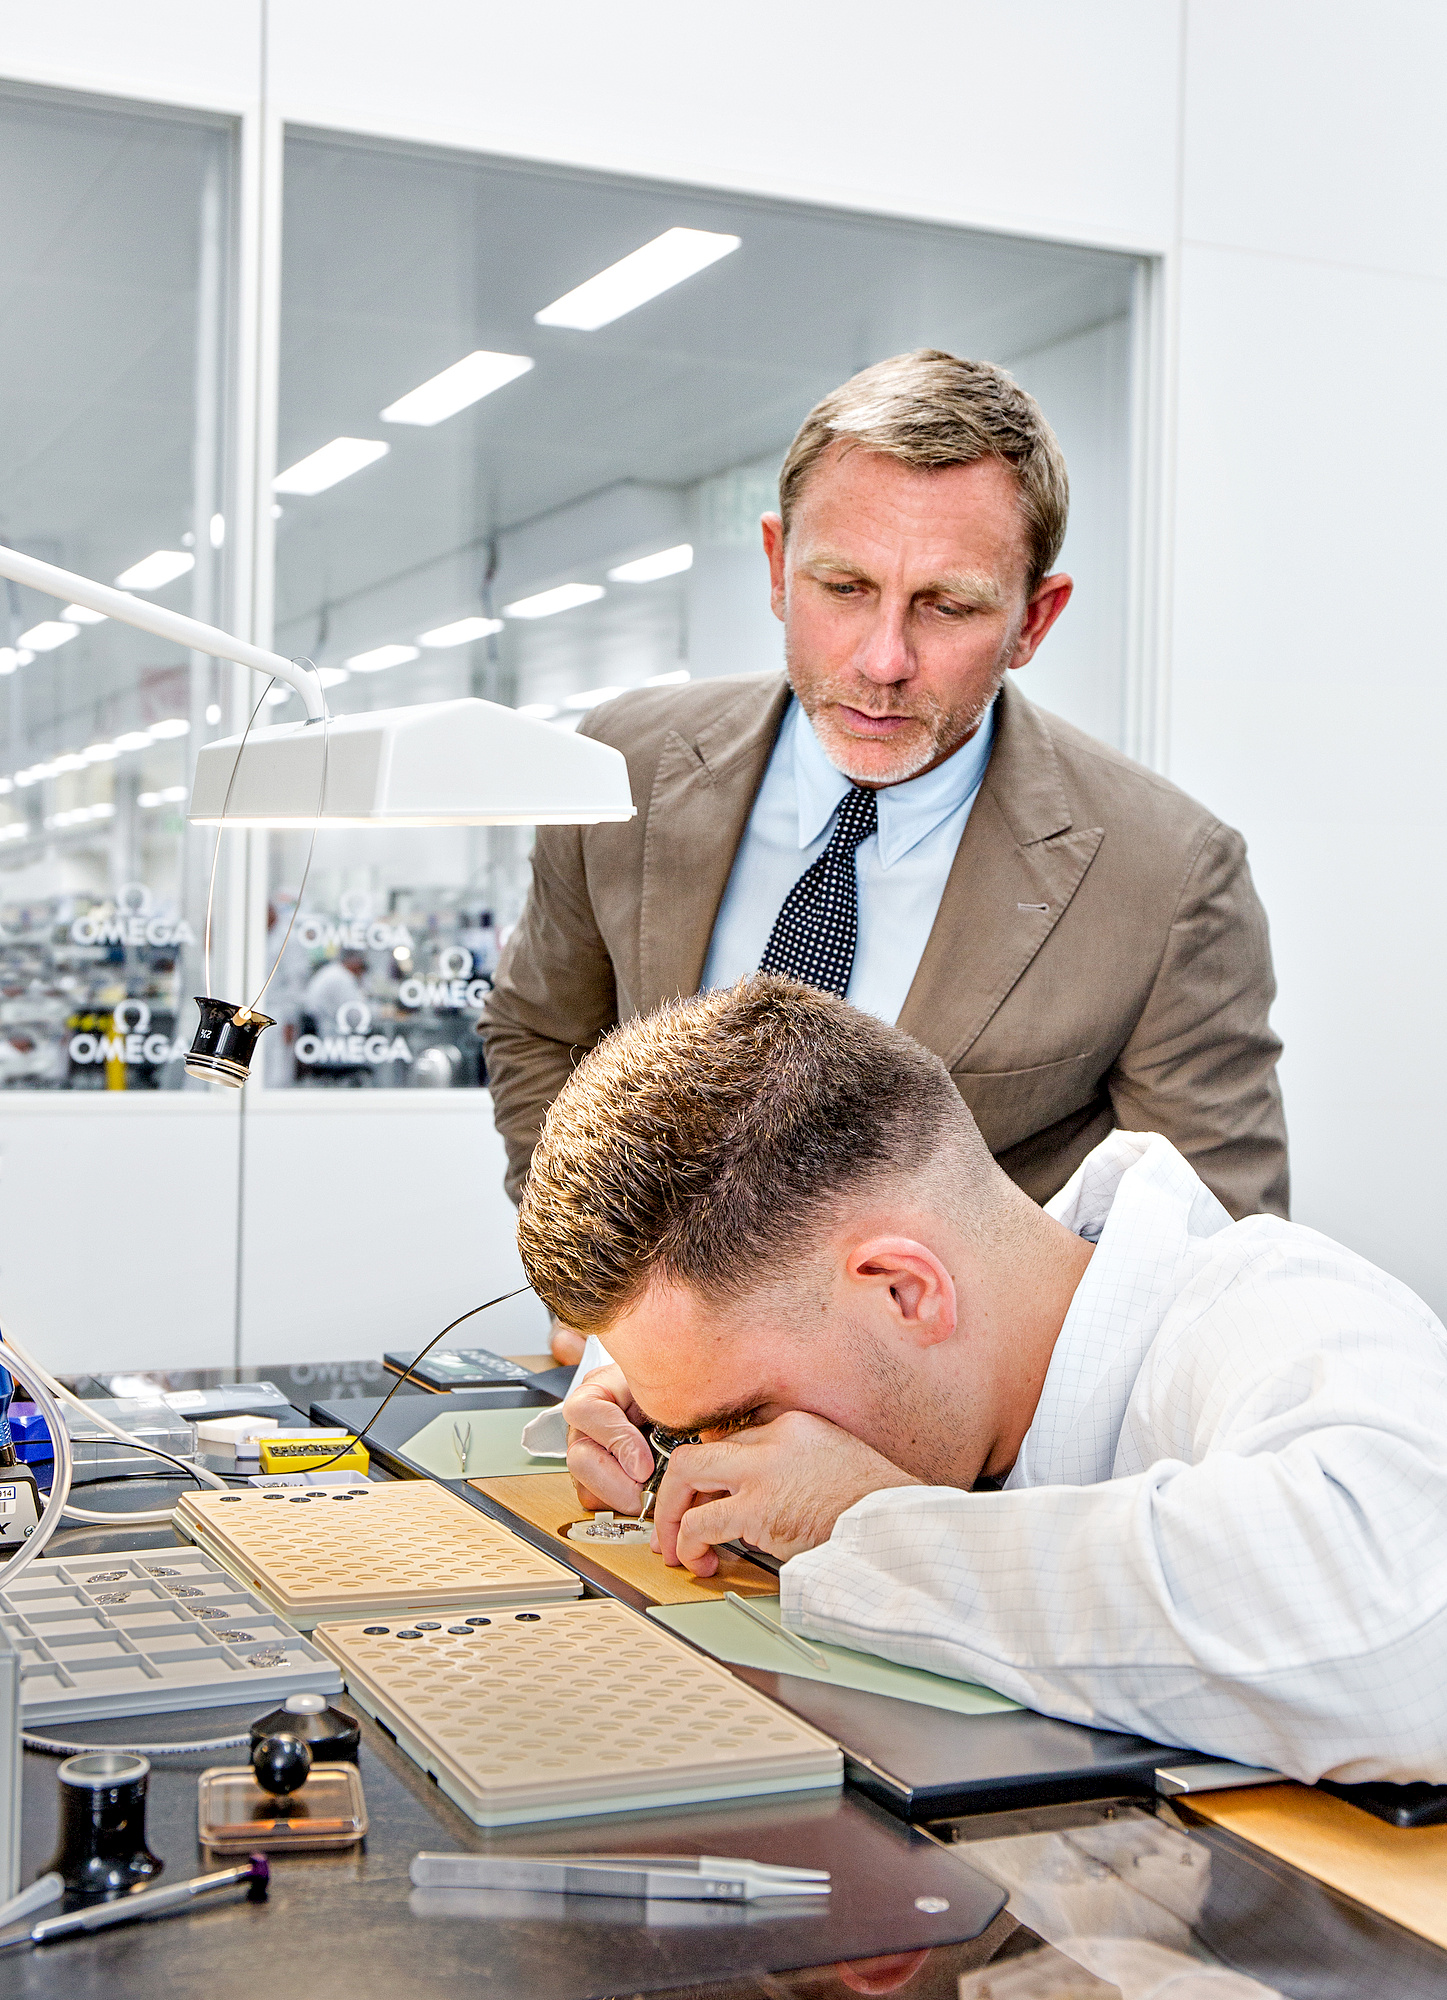 241-Daniel_Craig_is_seen_at_the_OMEGA_Factory_Visit_in_S (1).jpgaa